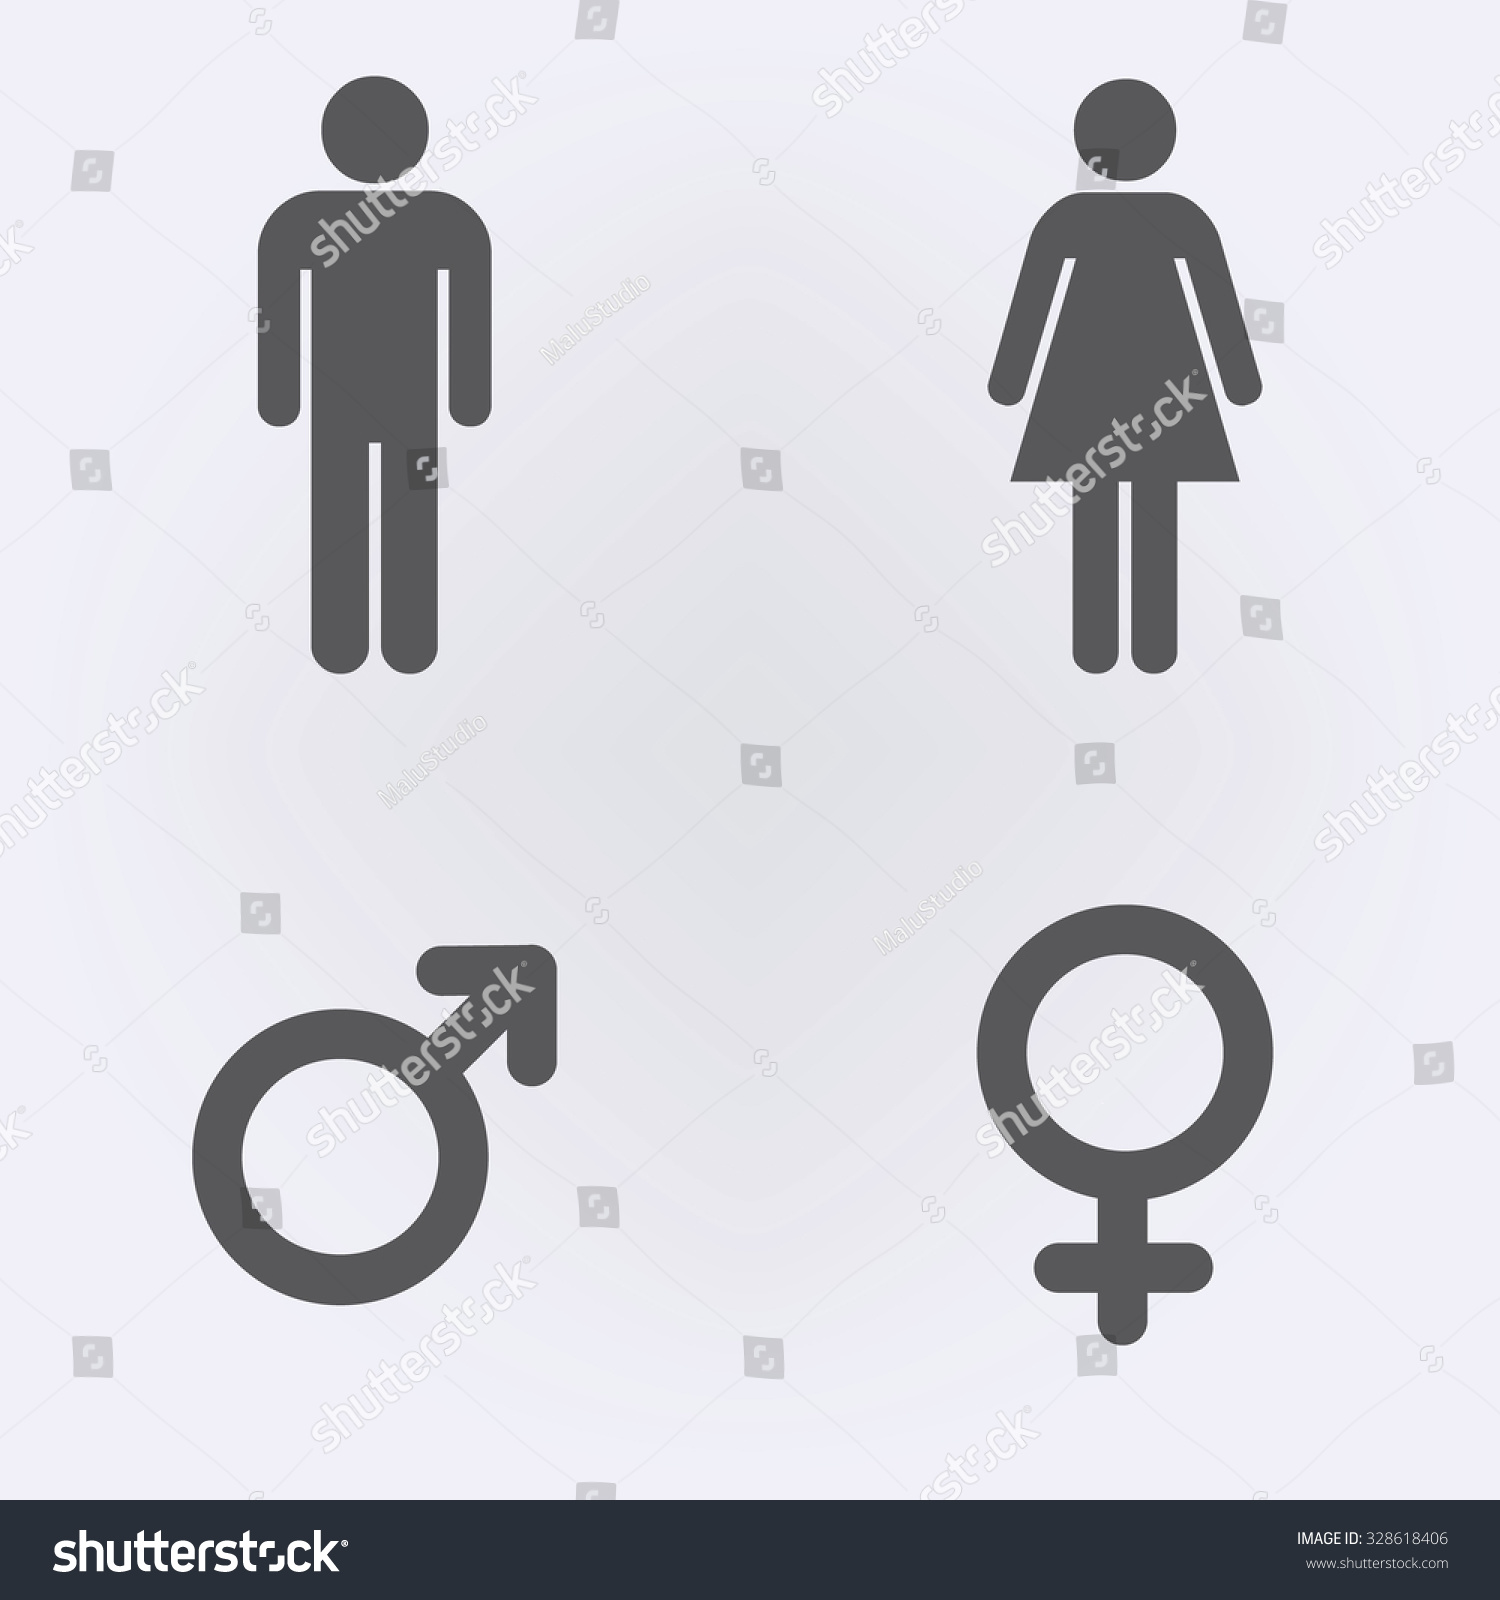 Man lady toilet sign male female stock vector 328618406 shutterstock a man and a lady toilet sign and male and female symbols people icon set biocorpaavc Choice Image